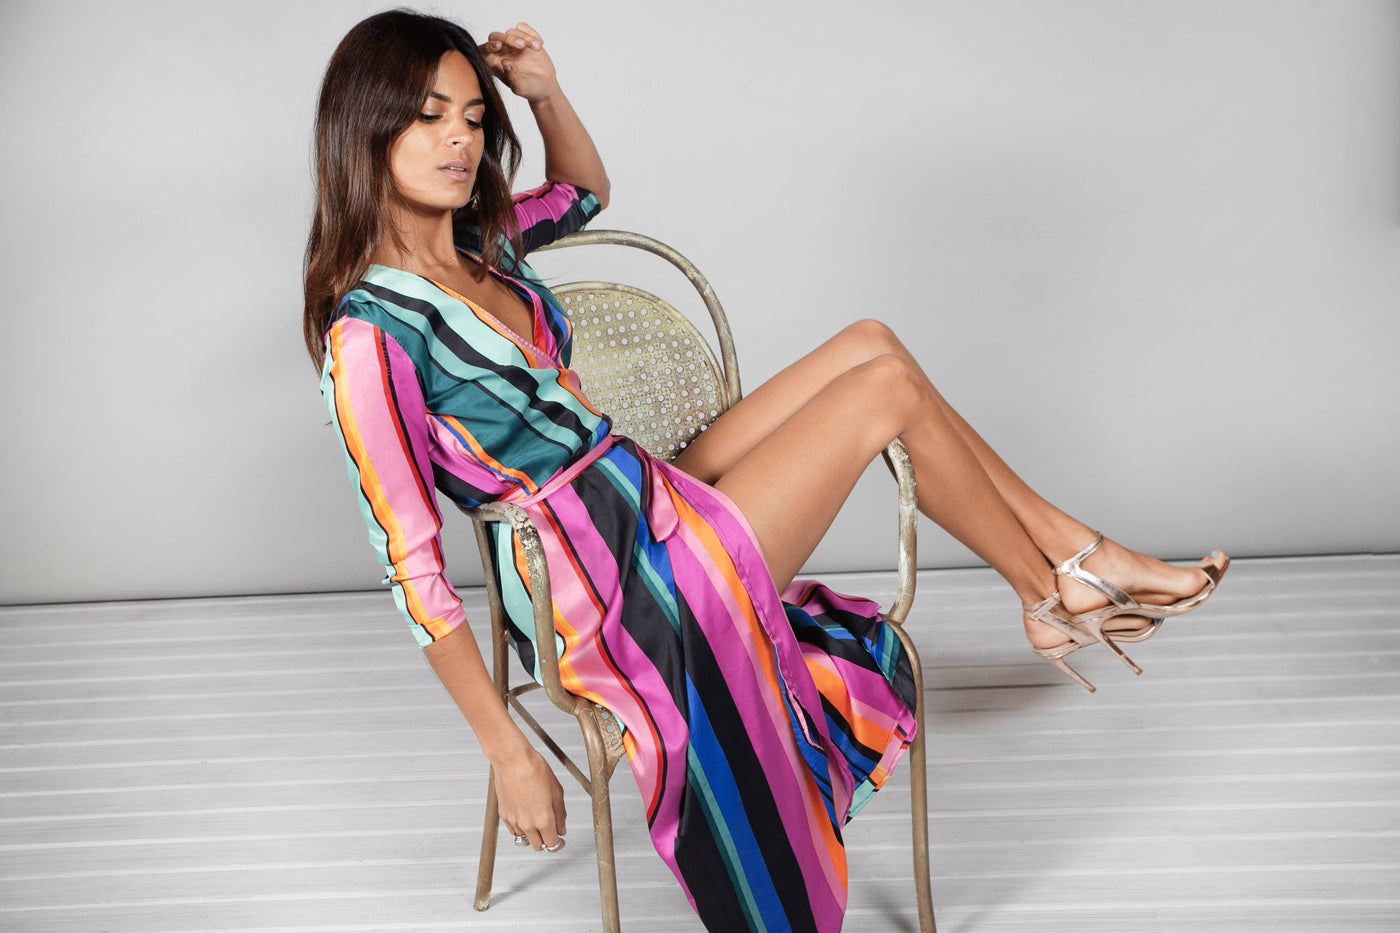 Dancing Leopard model reclines on sofa wearing Yondal Dress in stripe print with heels